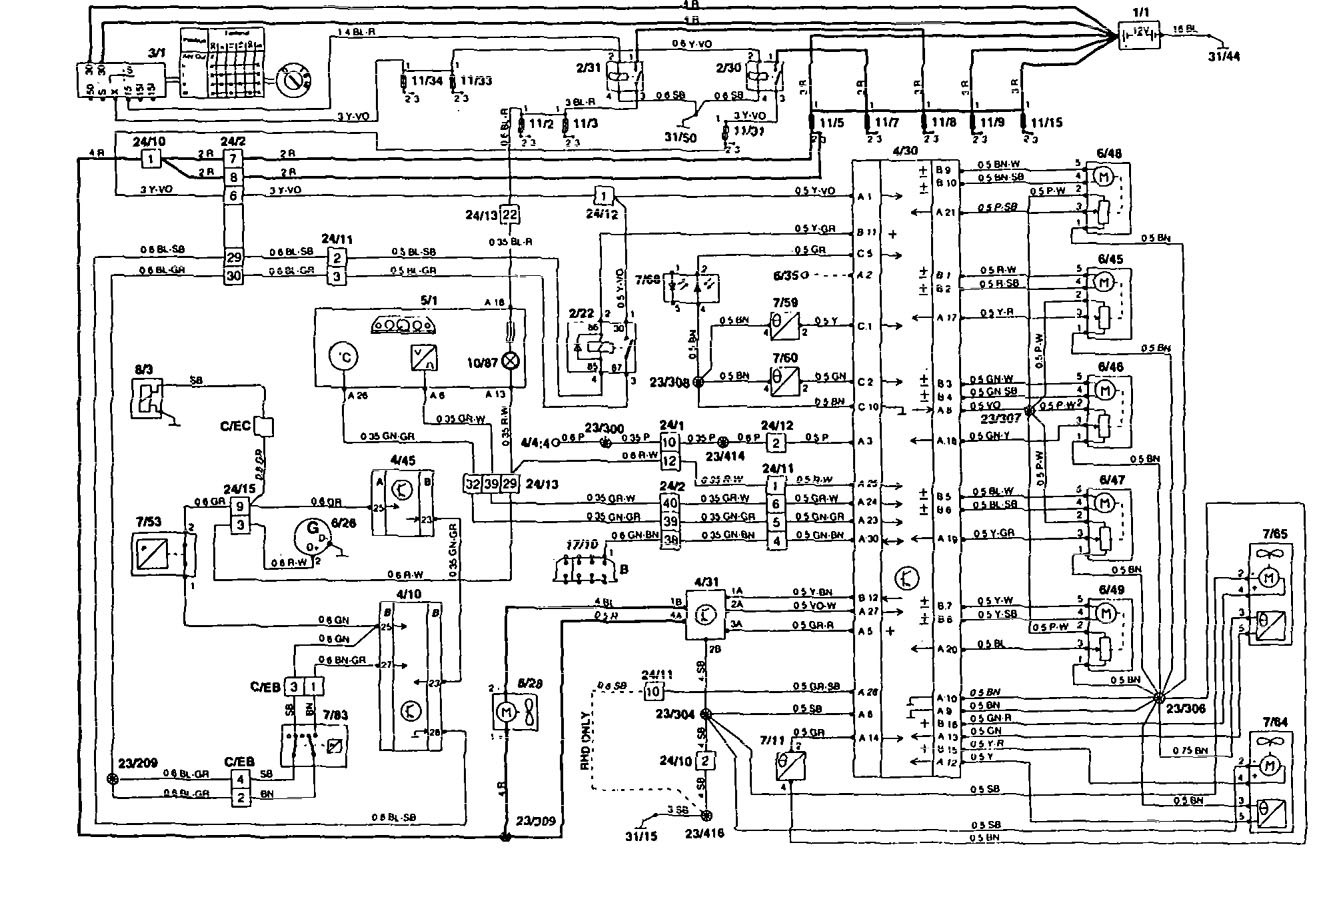 1994 cutlass supreme wiring diagram